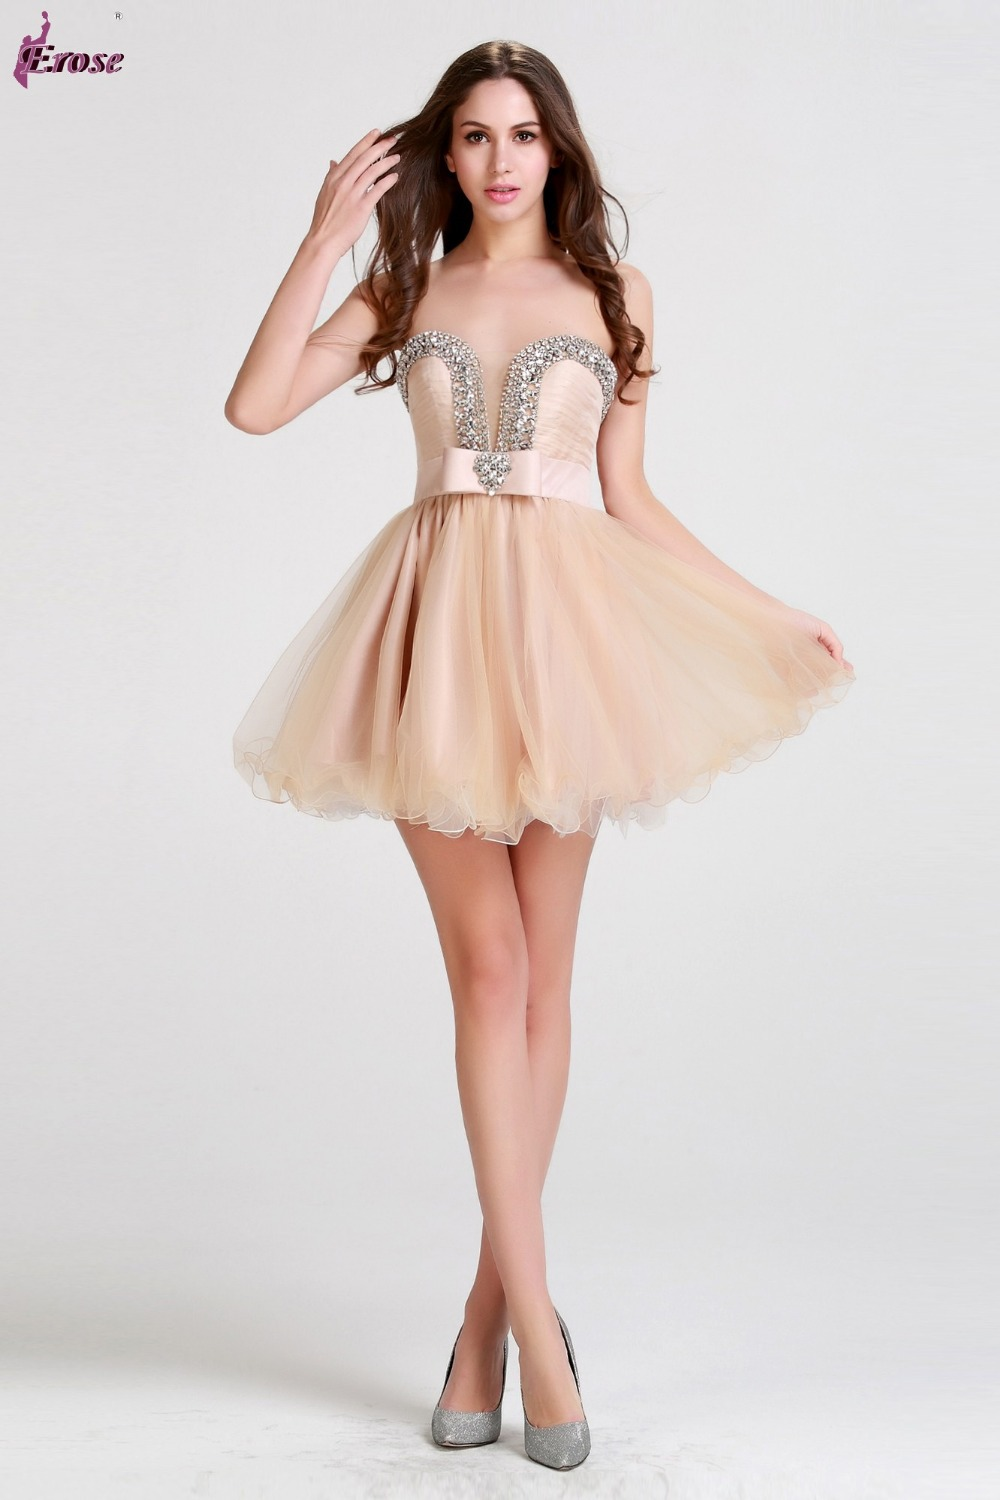 Short Puffy Cocktail Dresses   Dress images